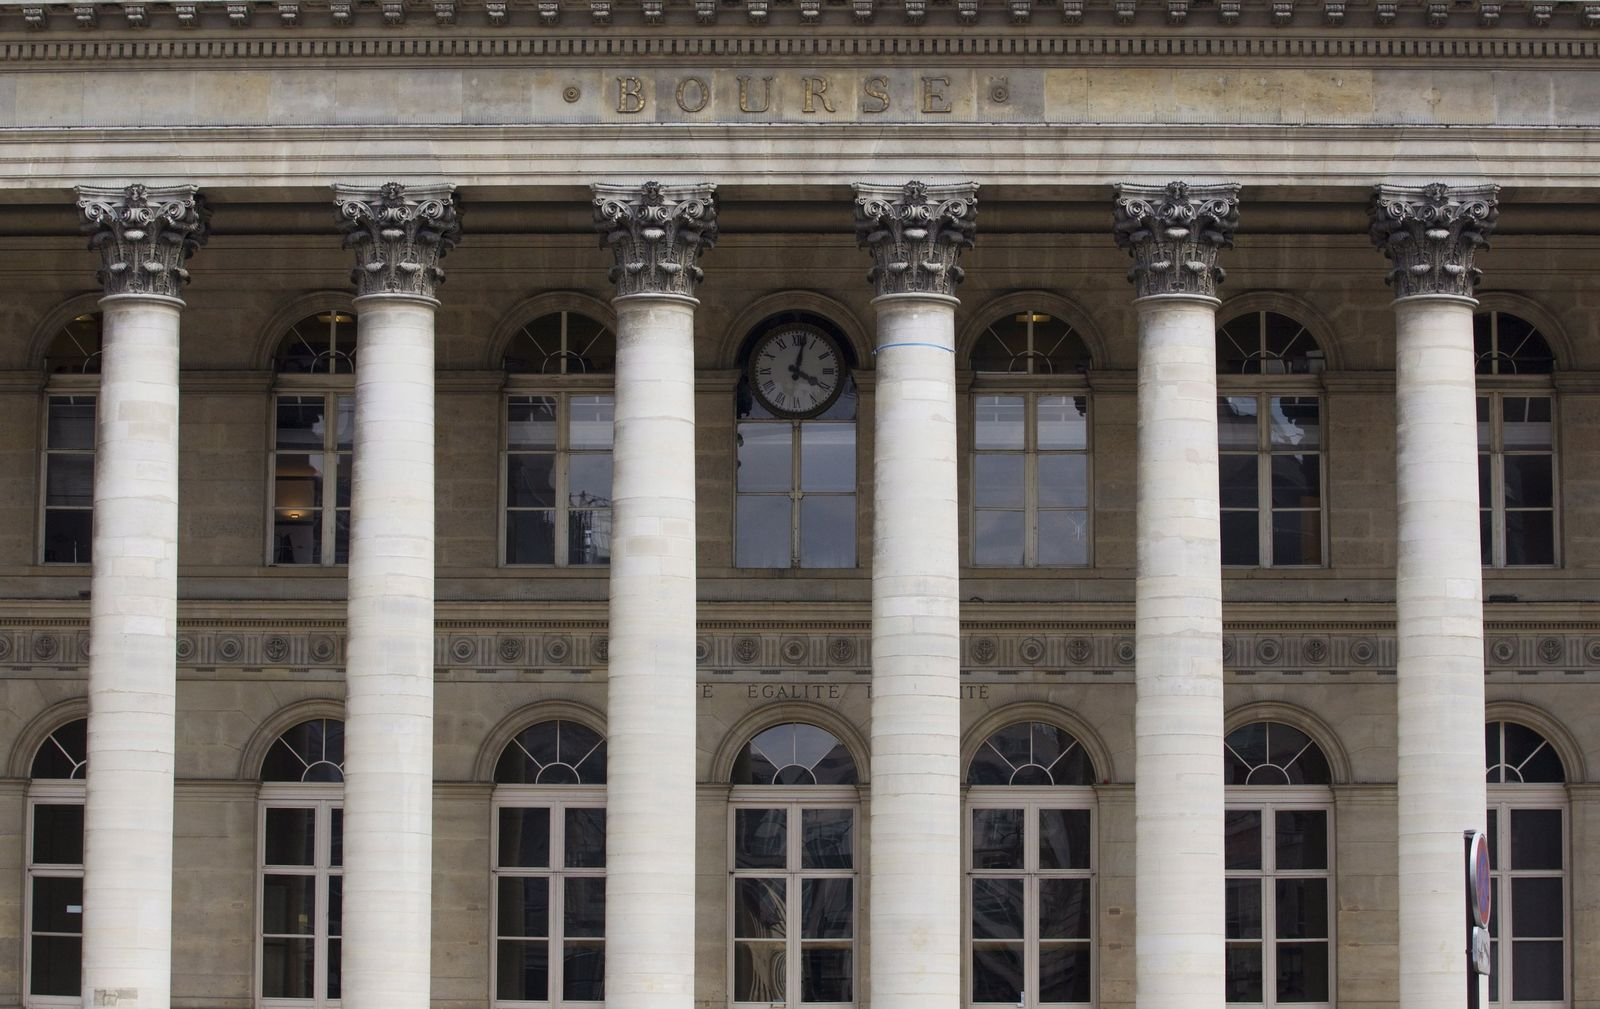 Banking sector shares fall on fears of possible trouble in French